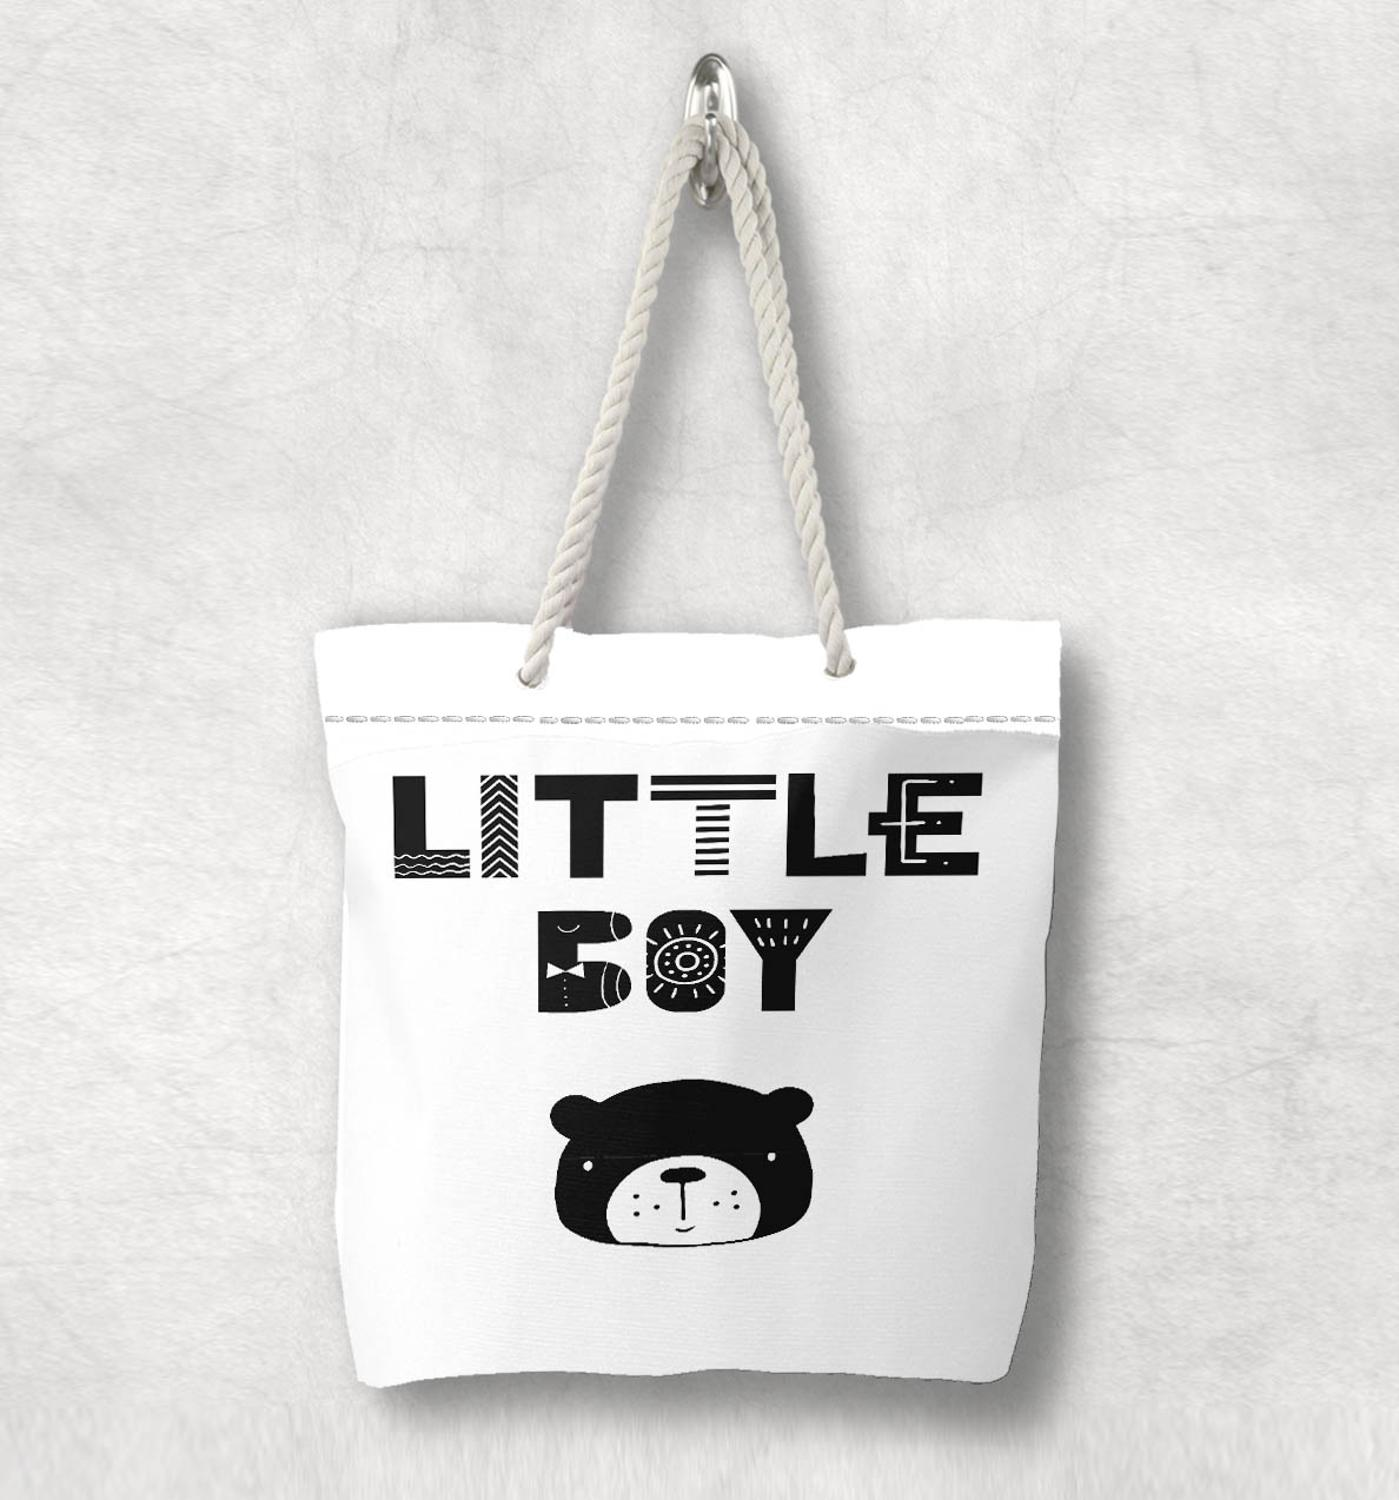 Else Black White Little Boy Bear Nordic Scandinavian White Rope Handle Canvas Bag  Cartoon Print Zippered Tote Bag Shoulder Bag